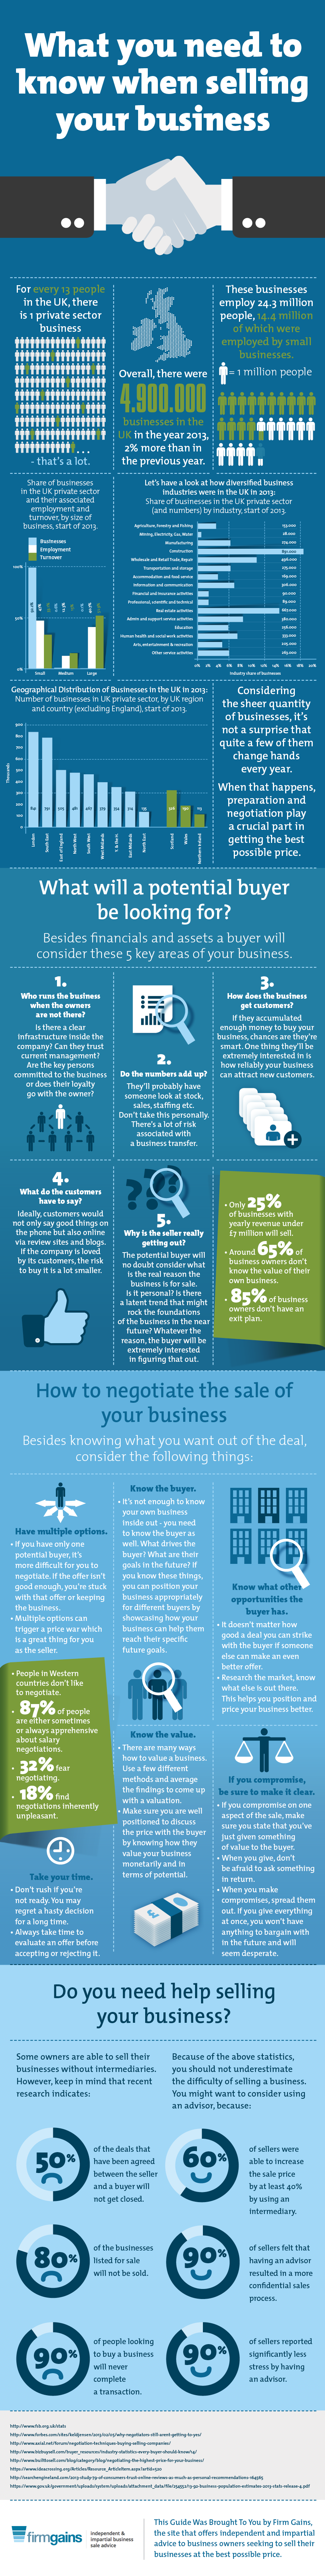 What You Need to Know When Selling Your Business